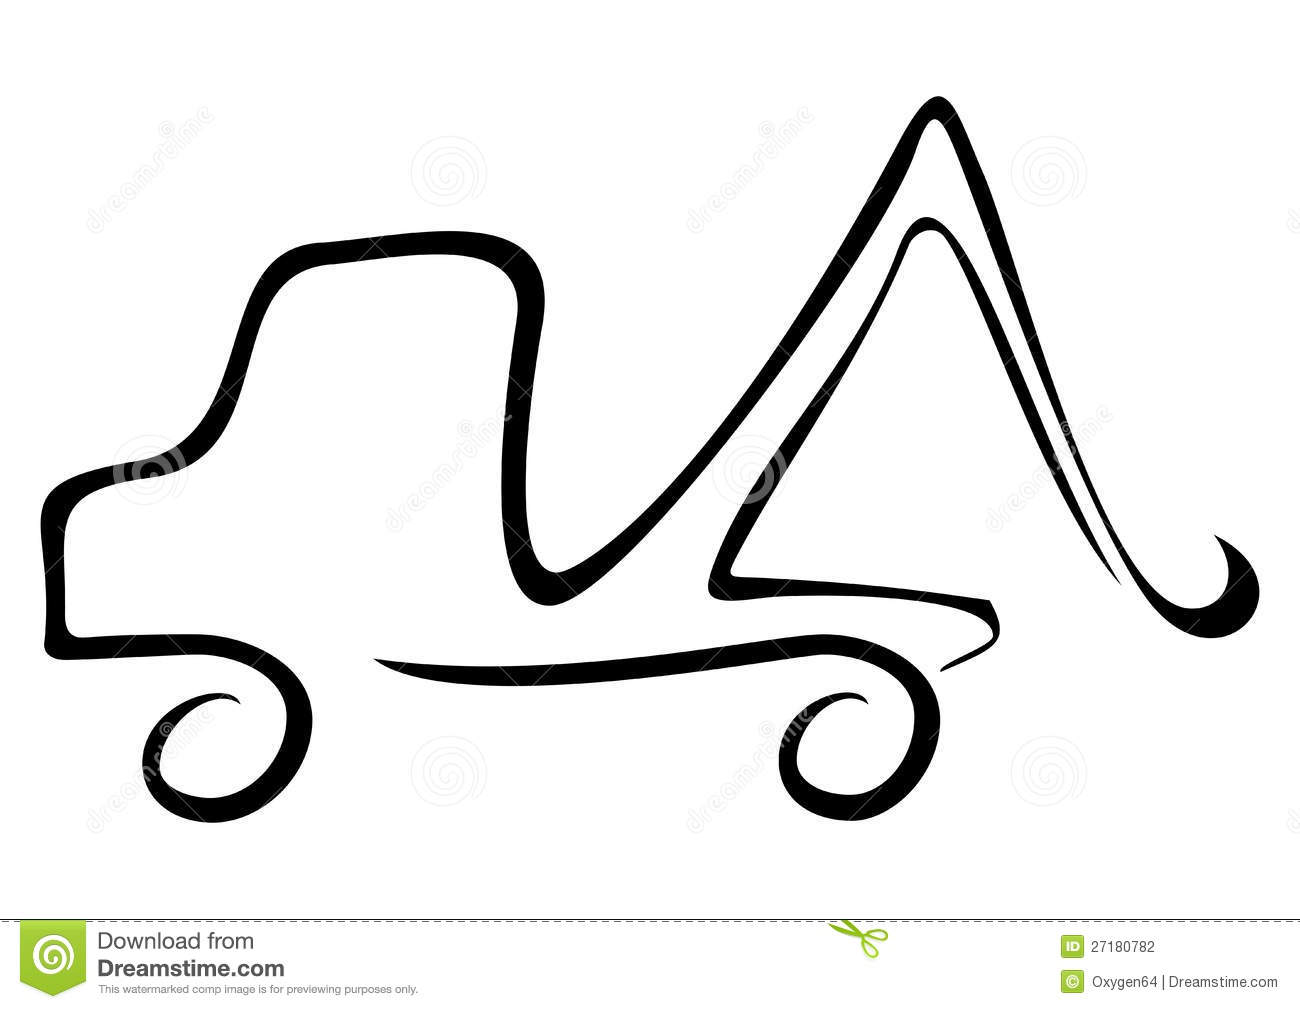 Stock Illustration Truck Symbol Vector Illustration White Background Image47329160 furthermore Royalty Free Stock Images Truck Icons Set Isolated Black White Background Image38500799 furthermore Royalty Free Stock Images Traffic Sign Icons Reflect White Background Stock Image38094129 also Stock Image  munications Tower Image444371 further Stock Photography Help Car Image27180782. on white delivery truck no background